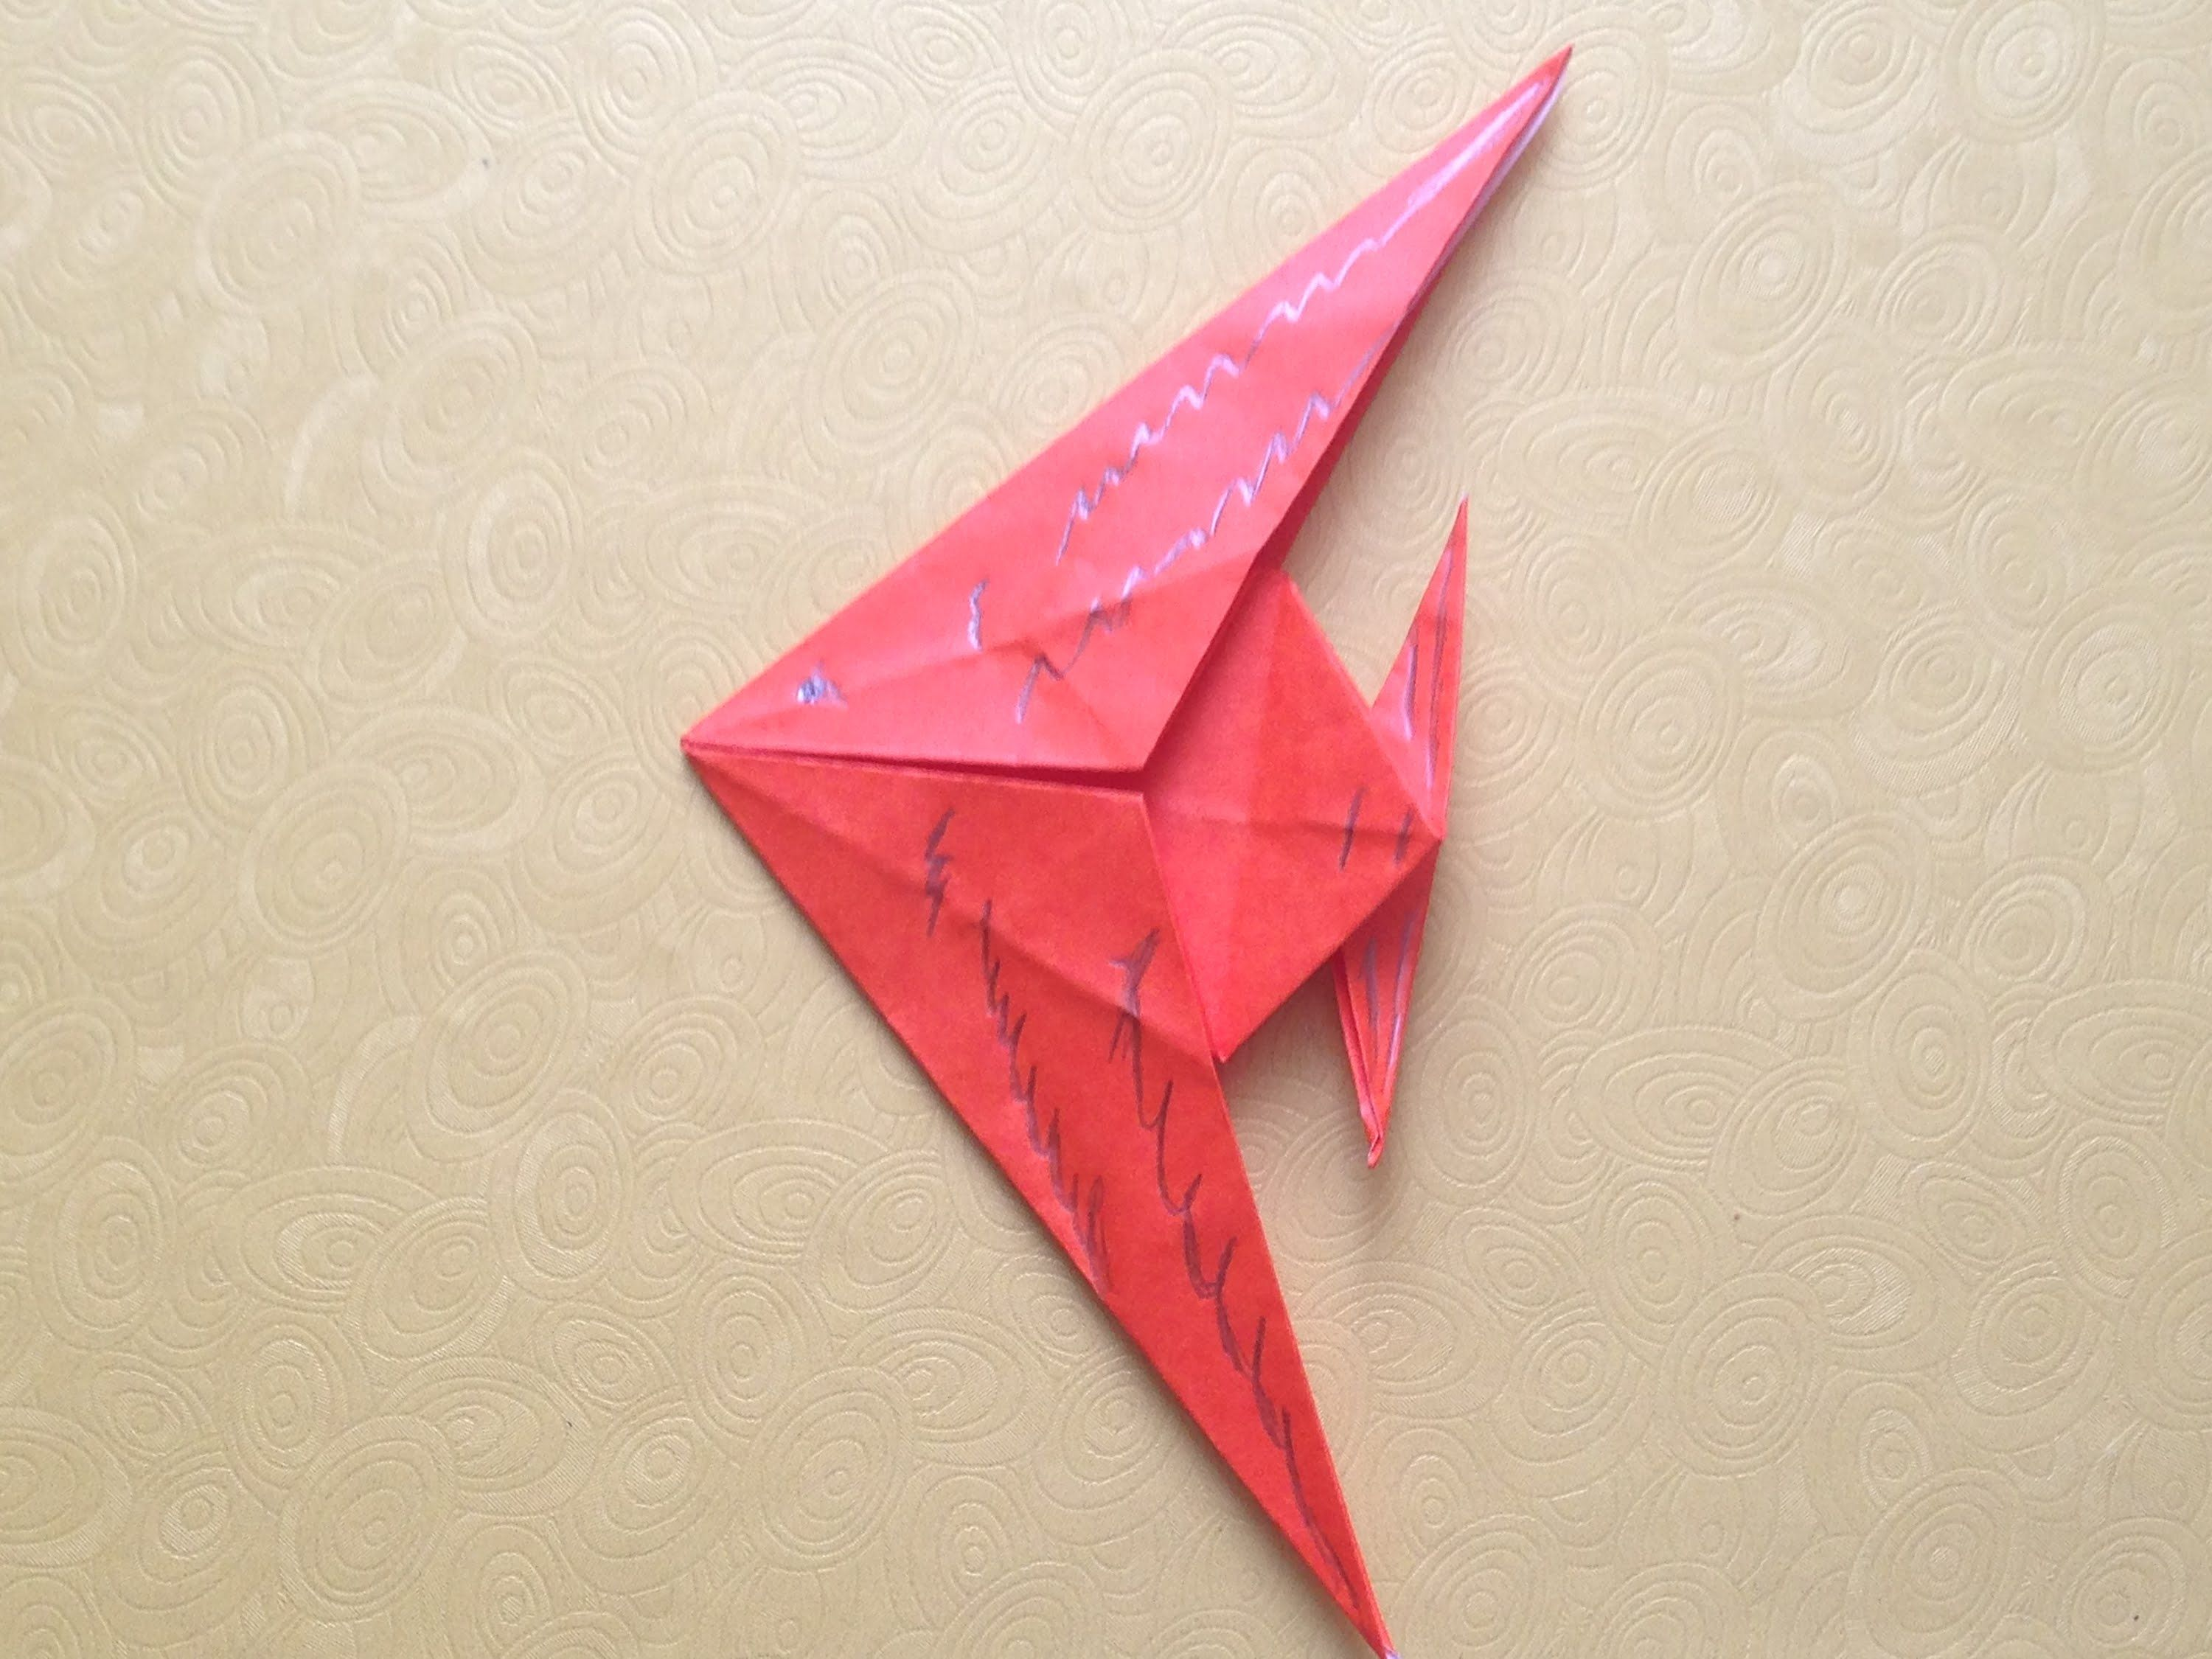 Origami fish easy for beginners origami for beginners origami fish easy for beginners jeuxipadfo Image collections